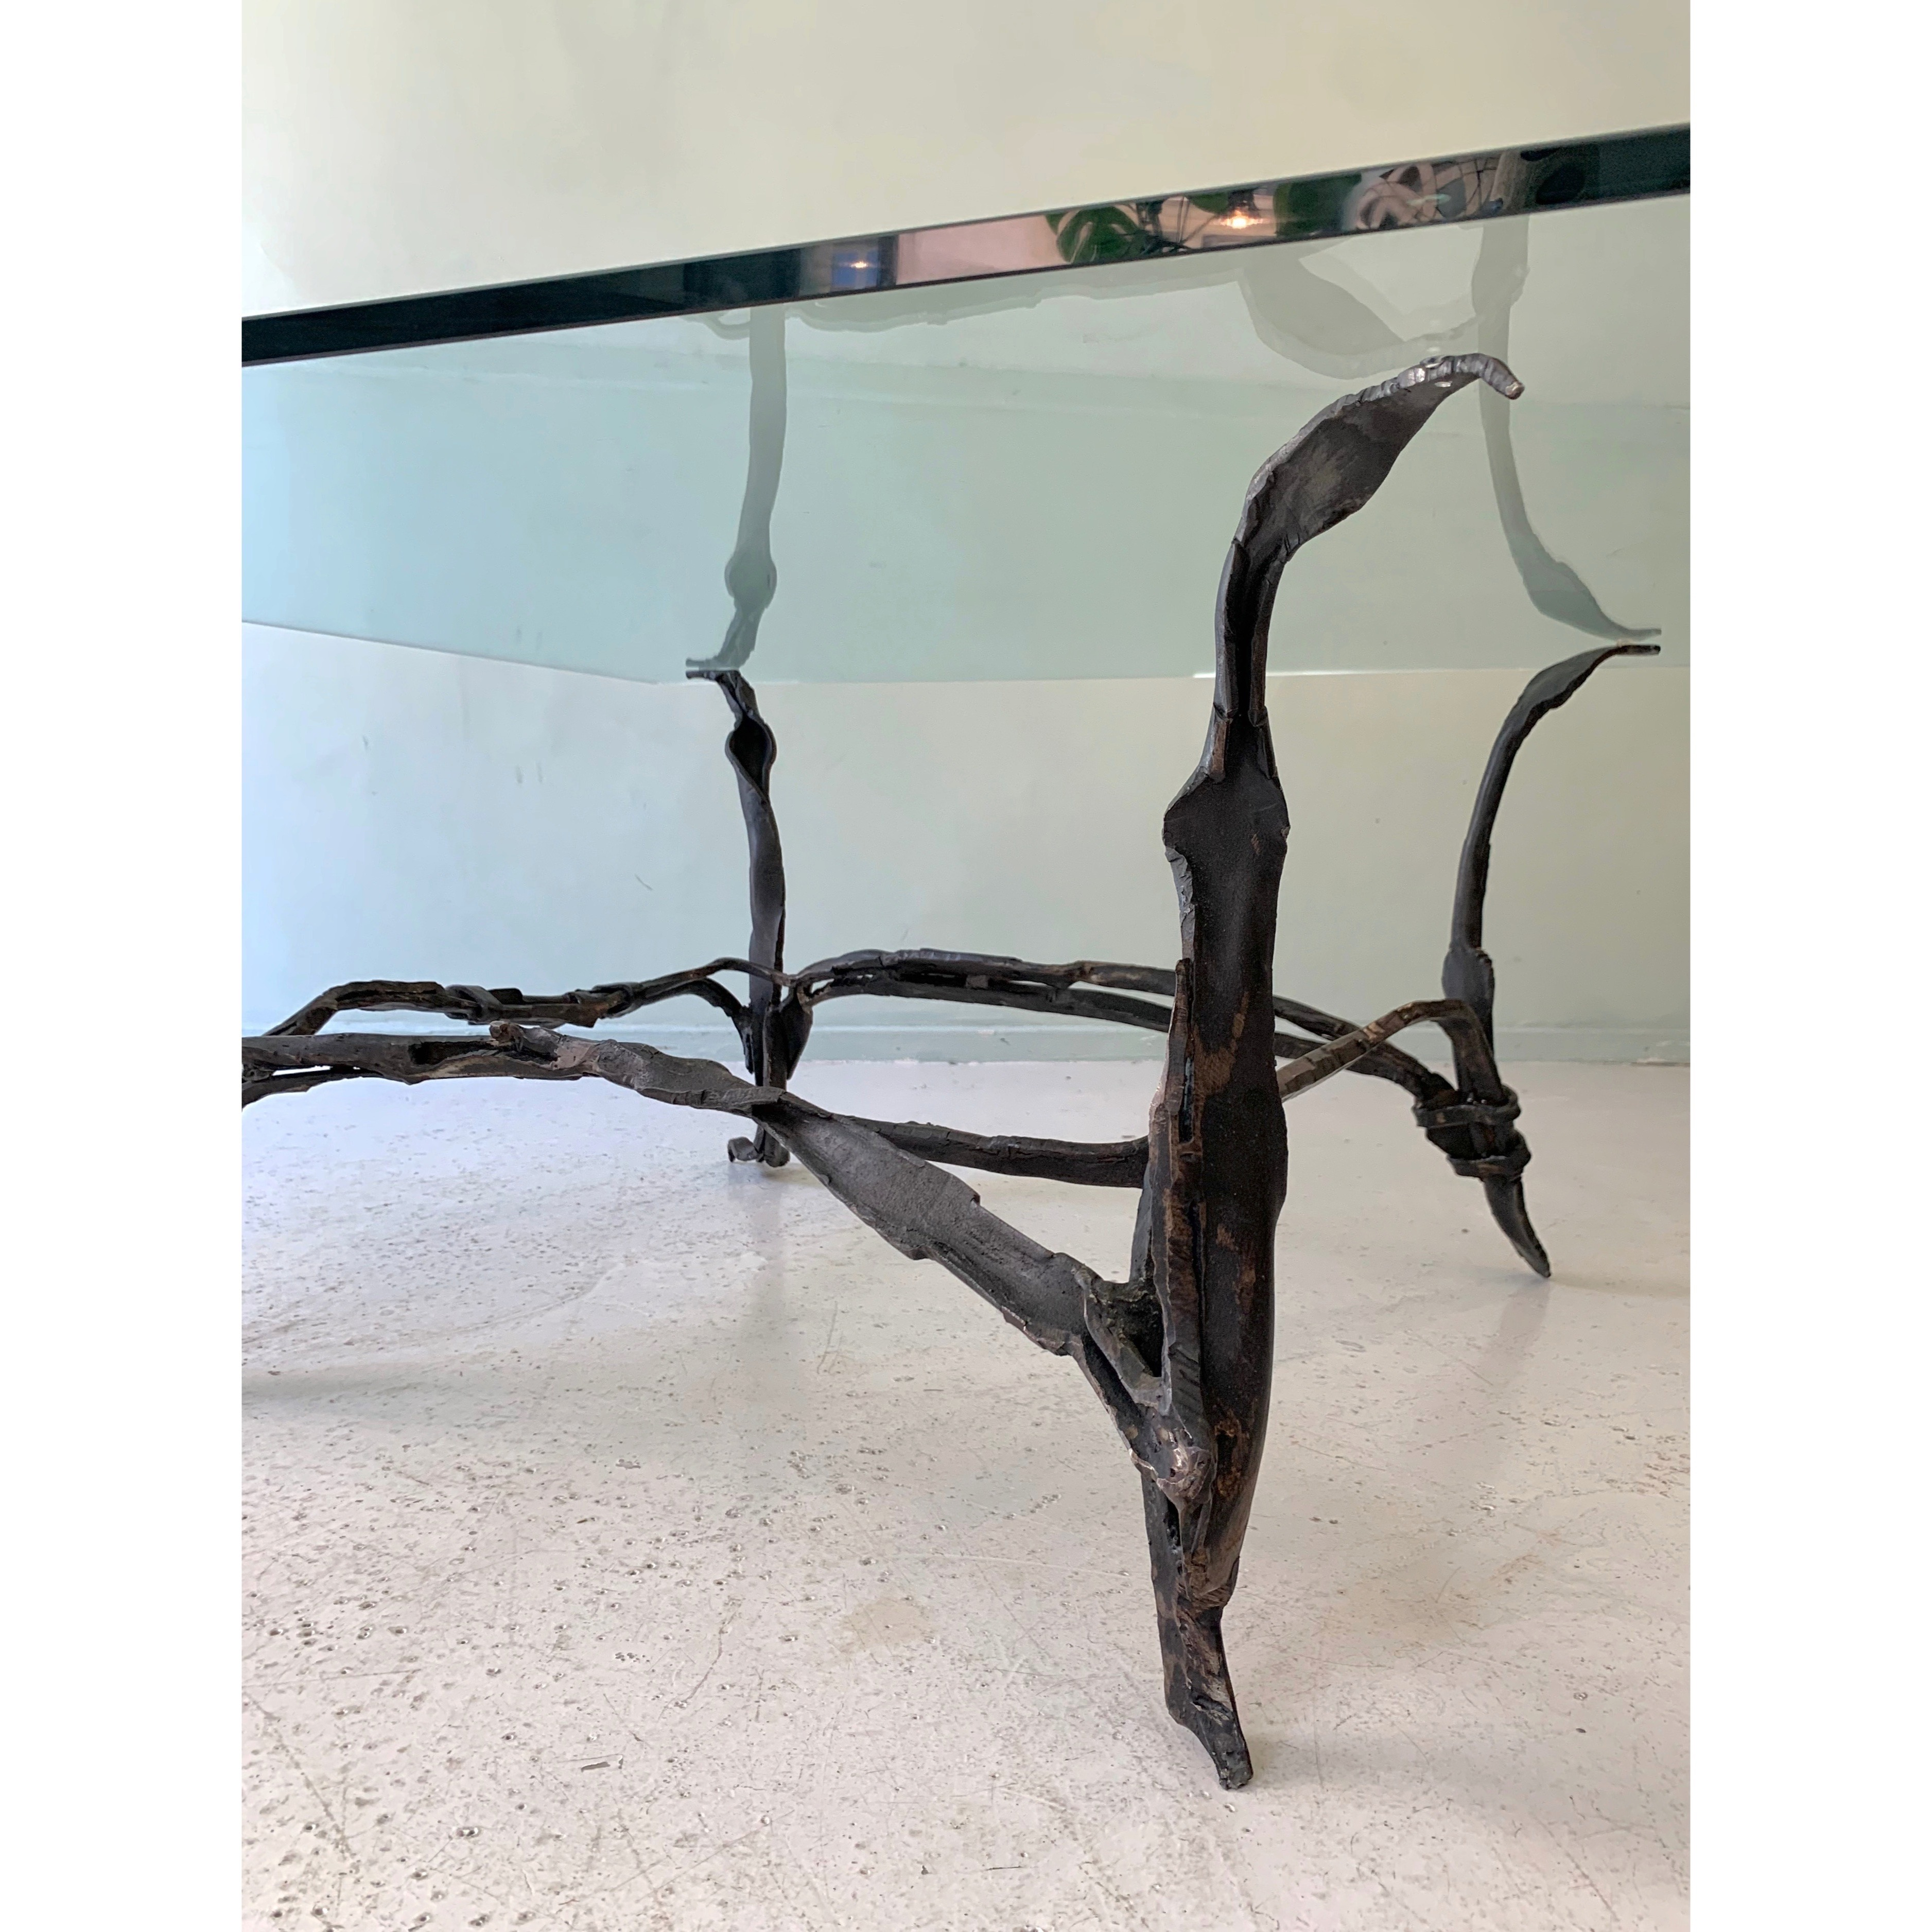 thevenin-wrought-iron-table--sculpture-1970s-furniture-artwork-decorative-art-home-interior-design-french